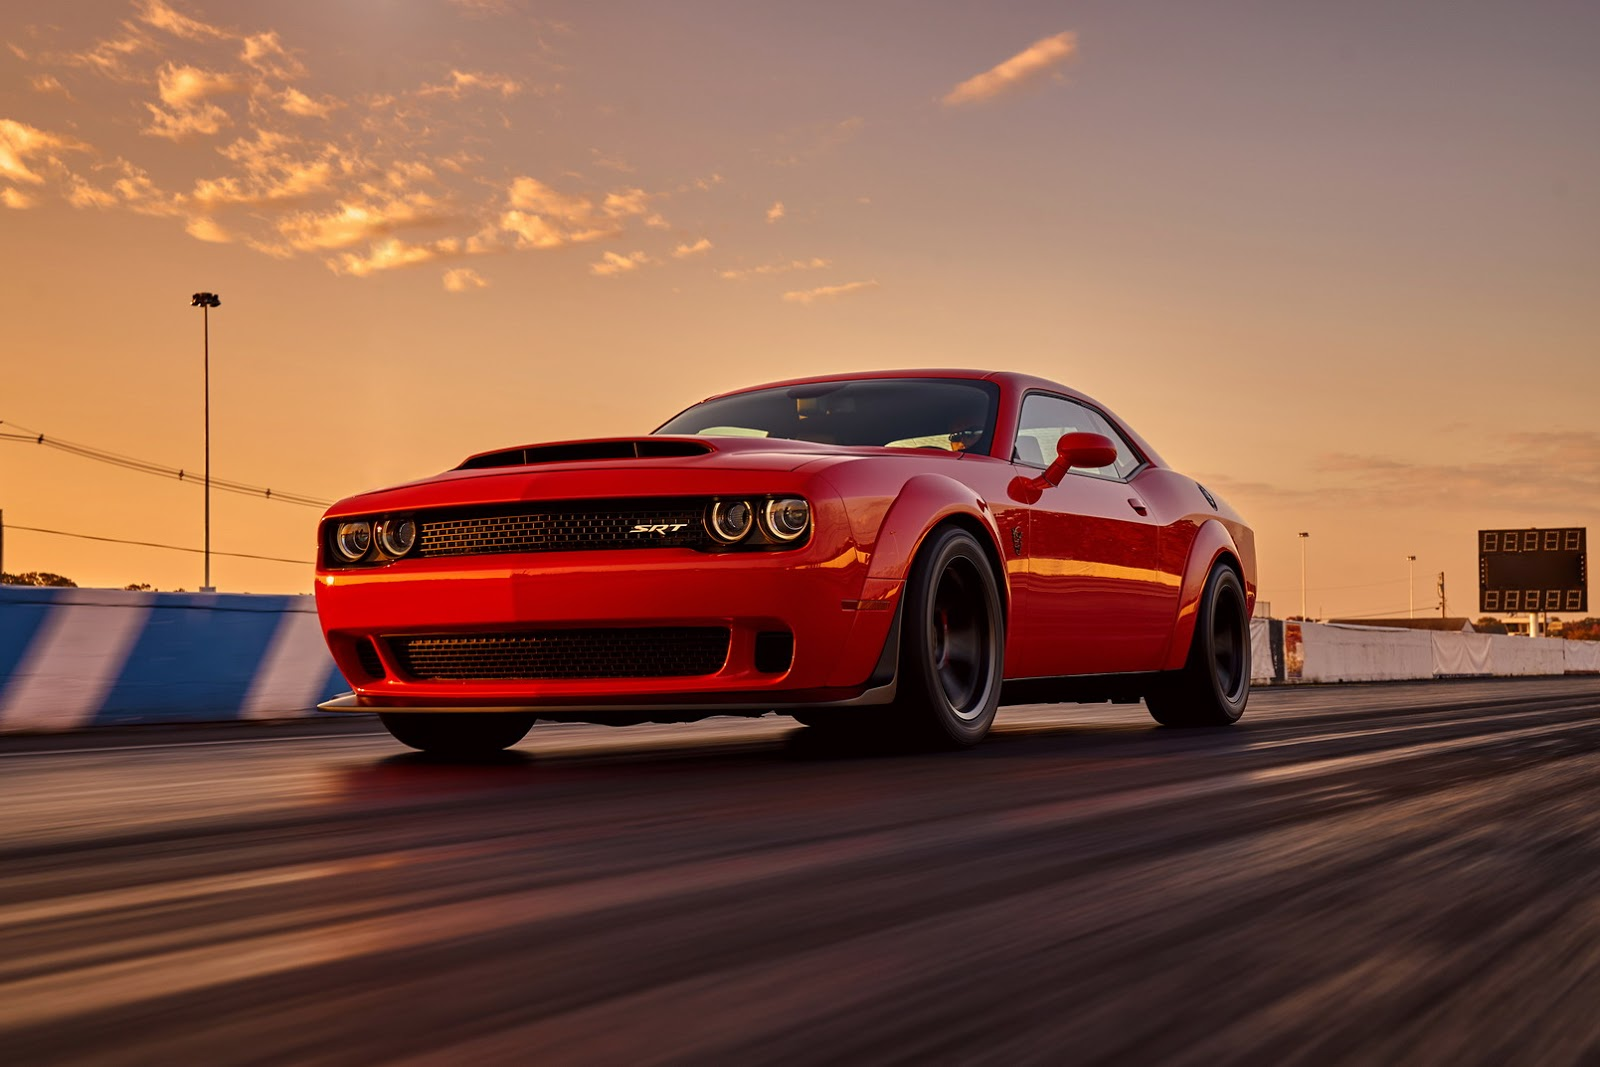 With Rollout, The 2018 Dodge Demon Can Hit 60 MPH In 2.1s ...